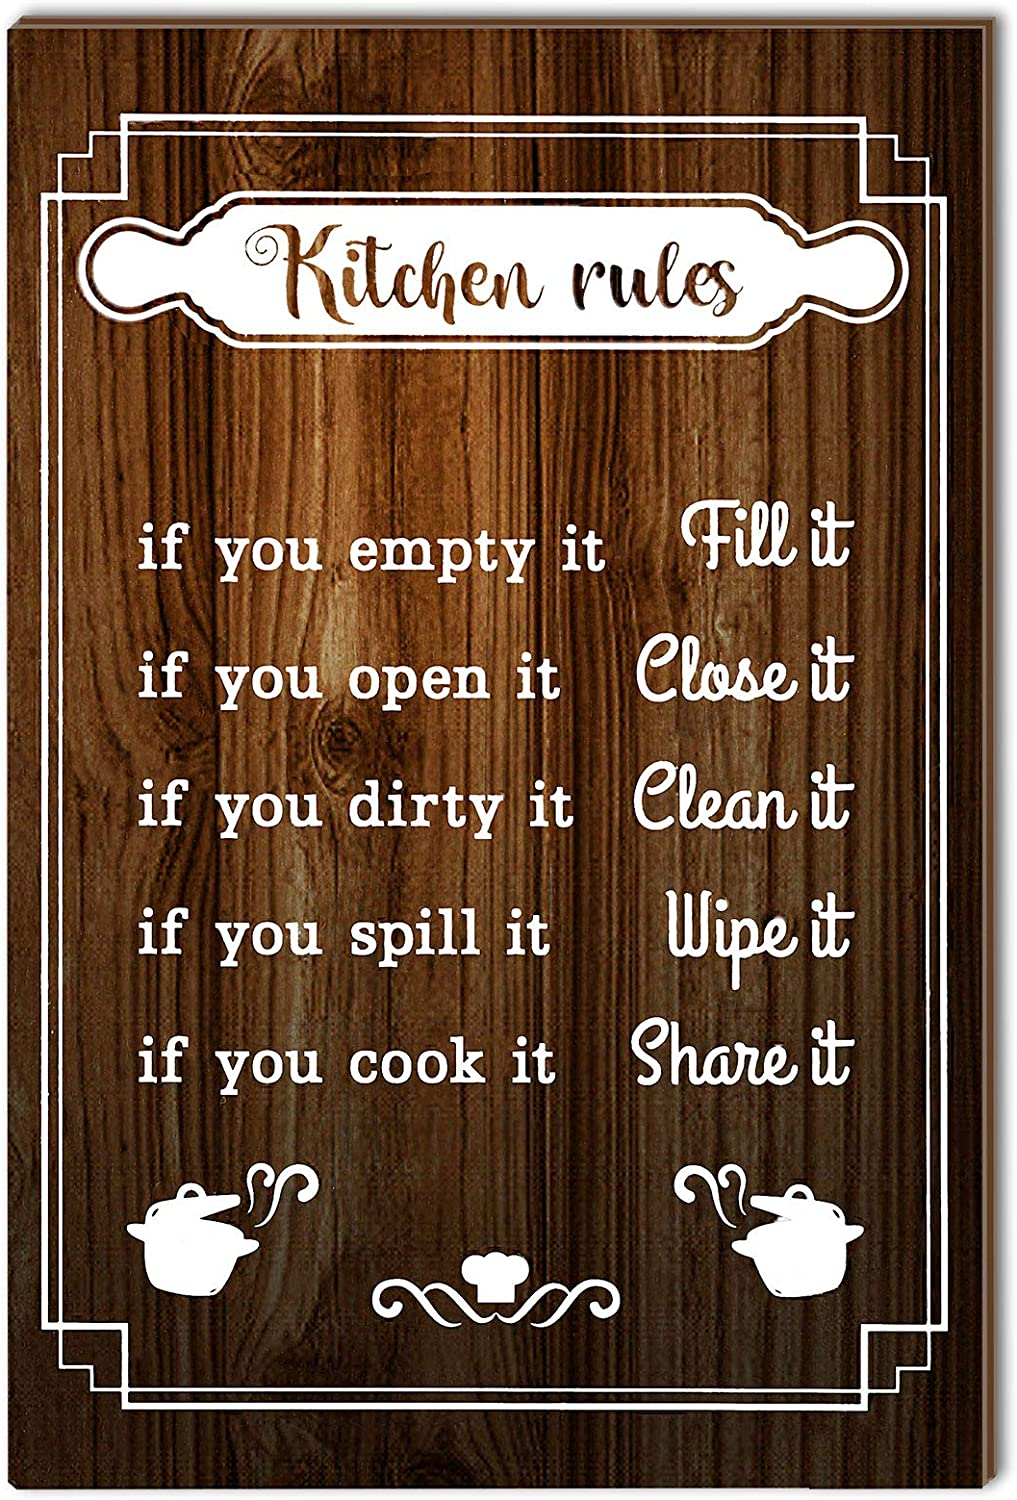 Jetec Kitchen Rules Sign Funny Kitchen Rules Wall Decor Rustic Wood Kitchen Sign Farmhouse Kitchen Wood Wall Art Decor Wood Plaque Hanging Sign for Home Housewarming Kitchen Decor, 12 x 8 Inch